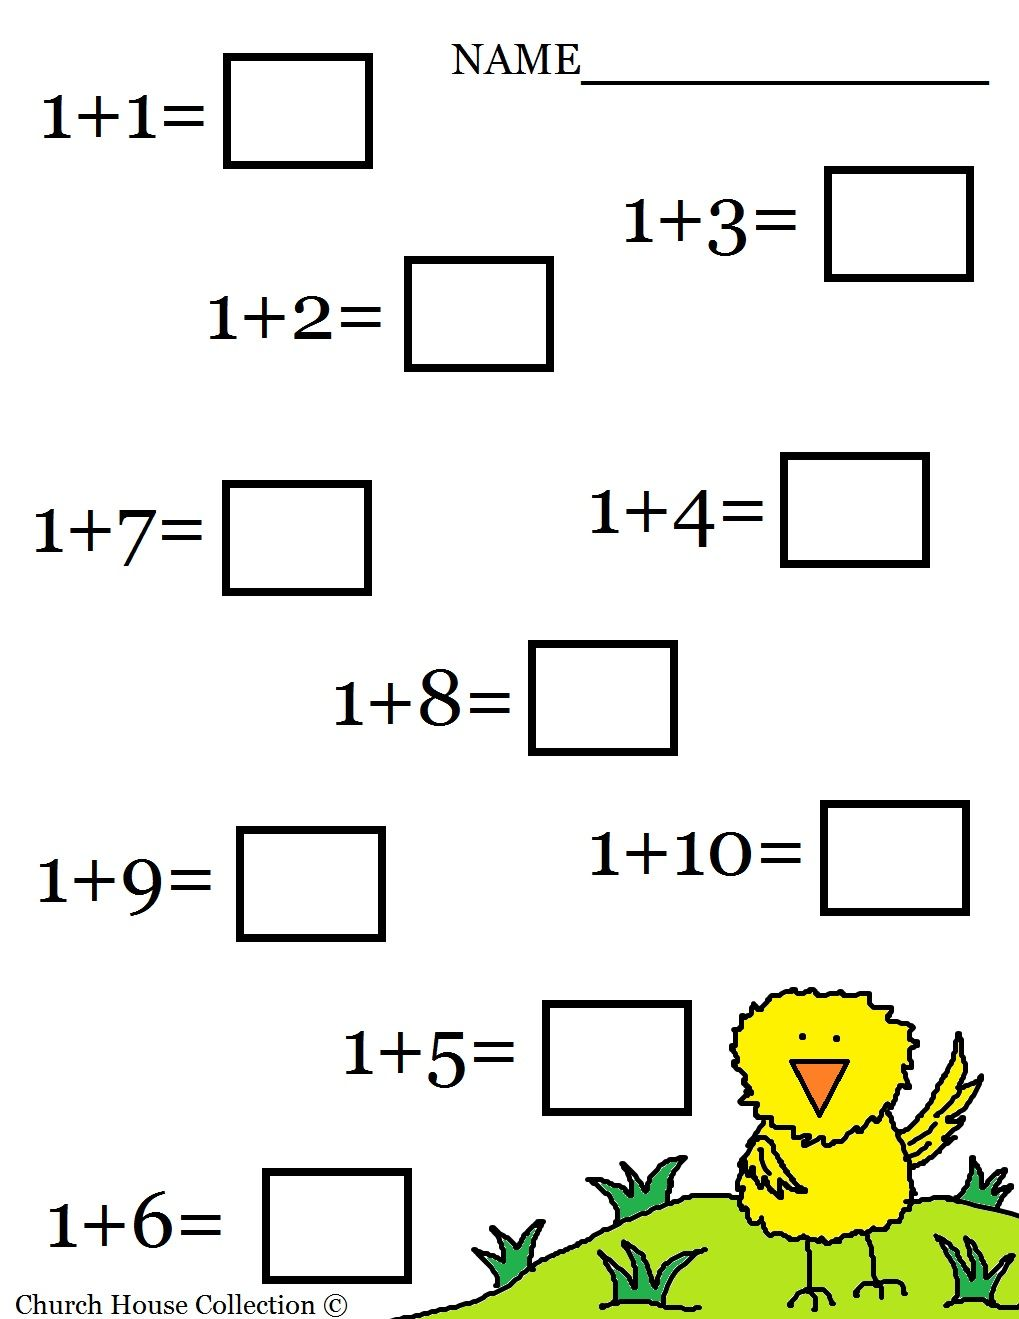 Weirdmailus  Personable  Images About Worksheets  Math On Pinterest  Math Sheets  With Foxy  Images About Worksheets  Math On Pinterest  Math Sheets Math Worksheets For Kindergarten And Simple Addition With Astounding Spanish For Beginners Worksheets Also Graphing System Of Inequalities Worksheet In Addition Constructing Triangles Worksheet And Nutrition Facts Label Worksheet As Well As Cut And Paste Worksheets For Preschoolers Additionally Spanish Preterite Worksheet From Pinterestcom With Weirdmailus  Foxy  Images About Worksheets  Math On Pinterest  Math Sheets  With Astounding  Images About Worksheets  Math On Pinterest  Math Sheets Math Worksheets For Kindergarten And Simple Addition And Personable Spanish For Beginners Worksheets Also Graphing System Of Inequalities Worksheet In Addition Constructing Triangles Worksheet From Pinterestcom